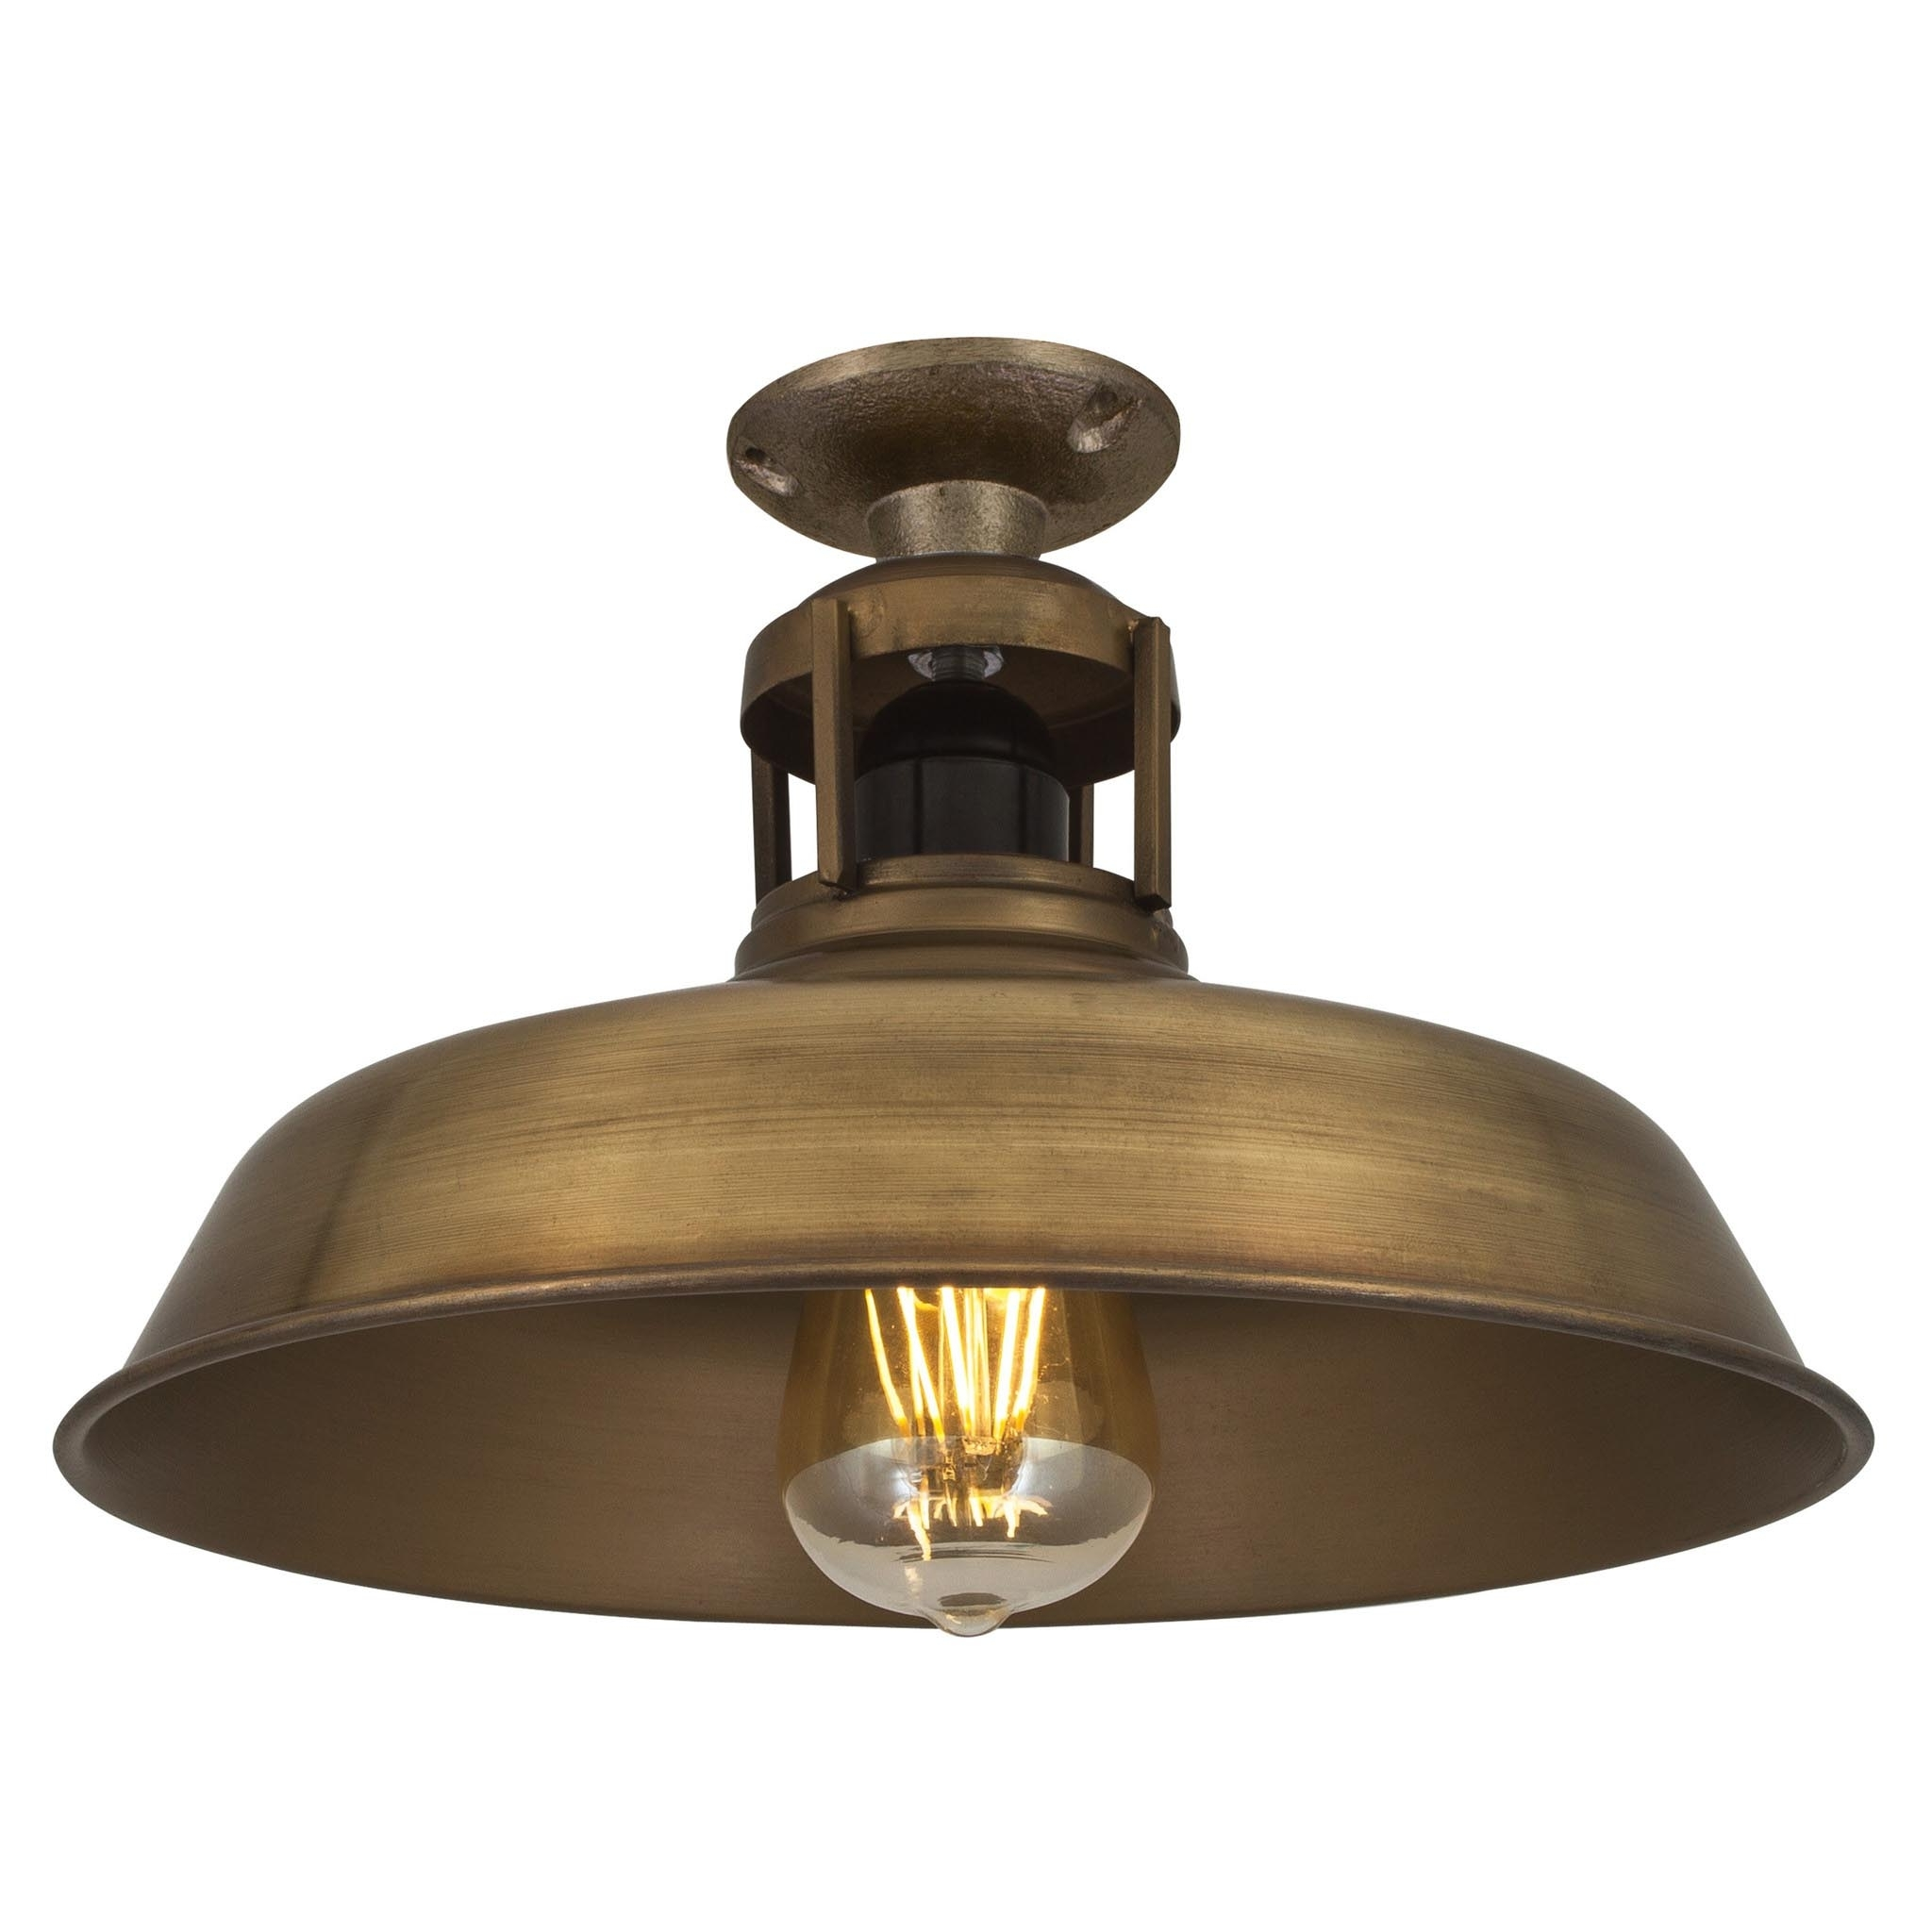 Urban Barn Outdoor Ceiling Light – Ceiling Designs Intended For Fashionable Outdoor Barn Ceiling Lights (View 19 of 20)